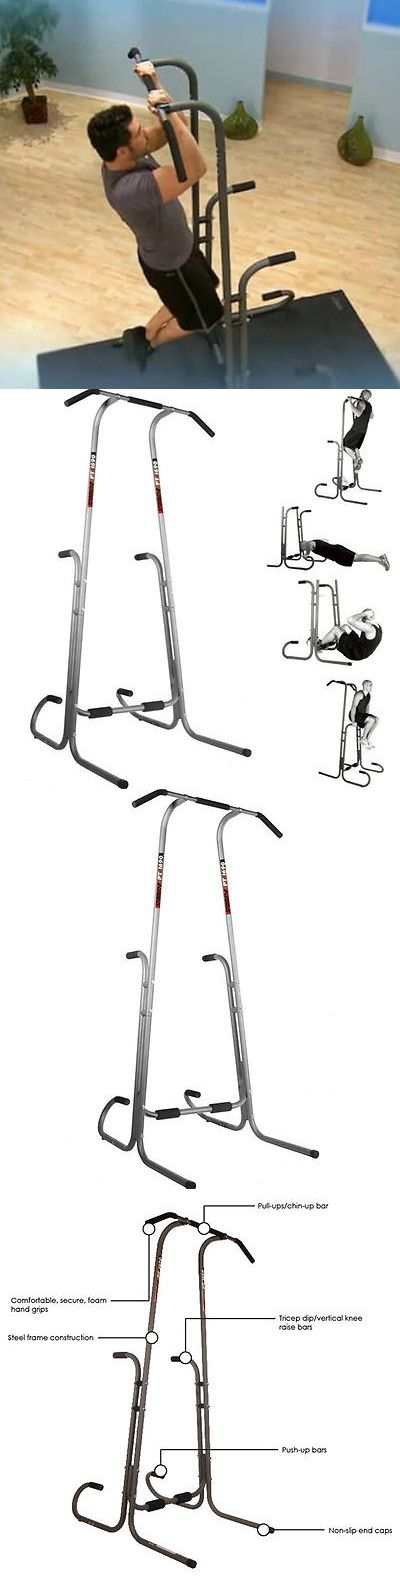 Pull Up Bars 179816: Free Standing Pull Up Bar Stand Portable Adjustable Strength Training Exercise -> BUY IT NOW ONLY: $162 on eBay!